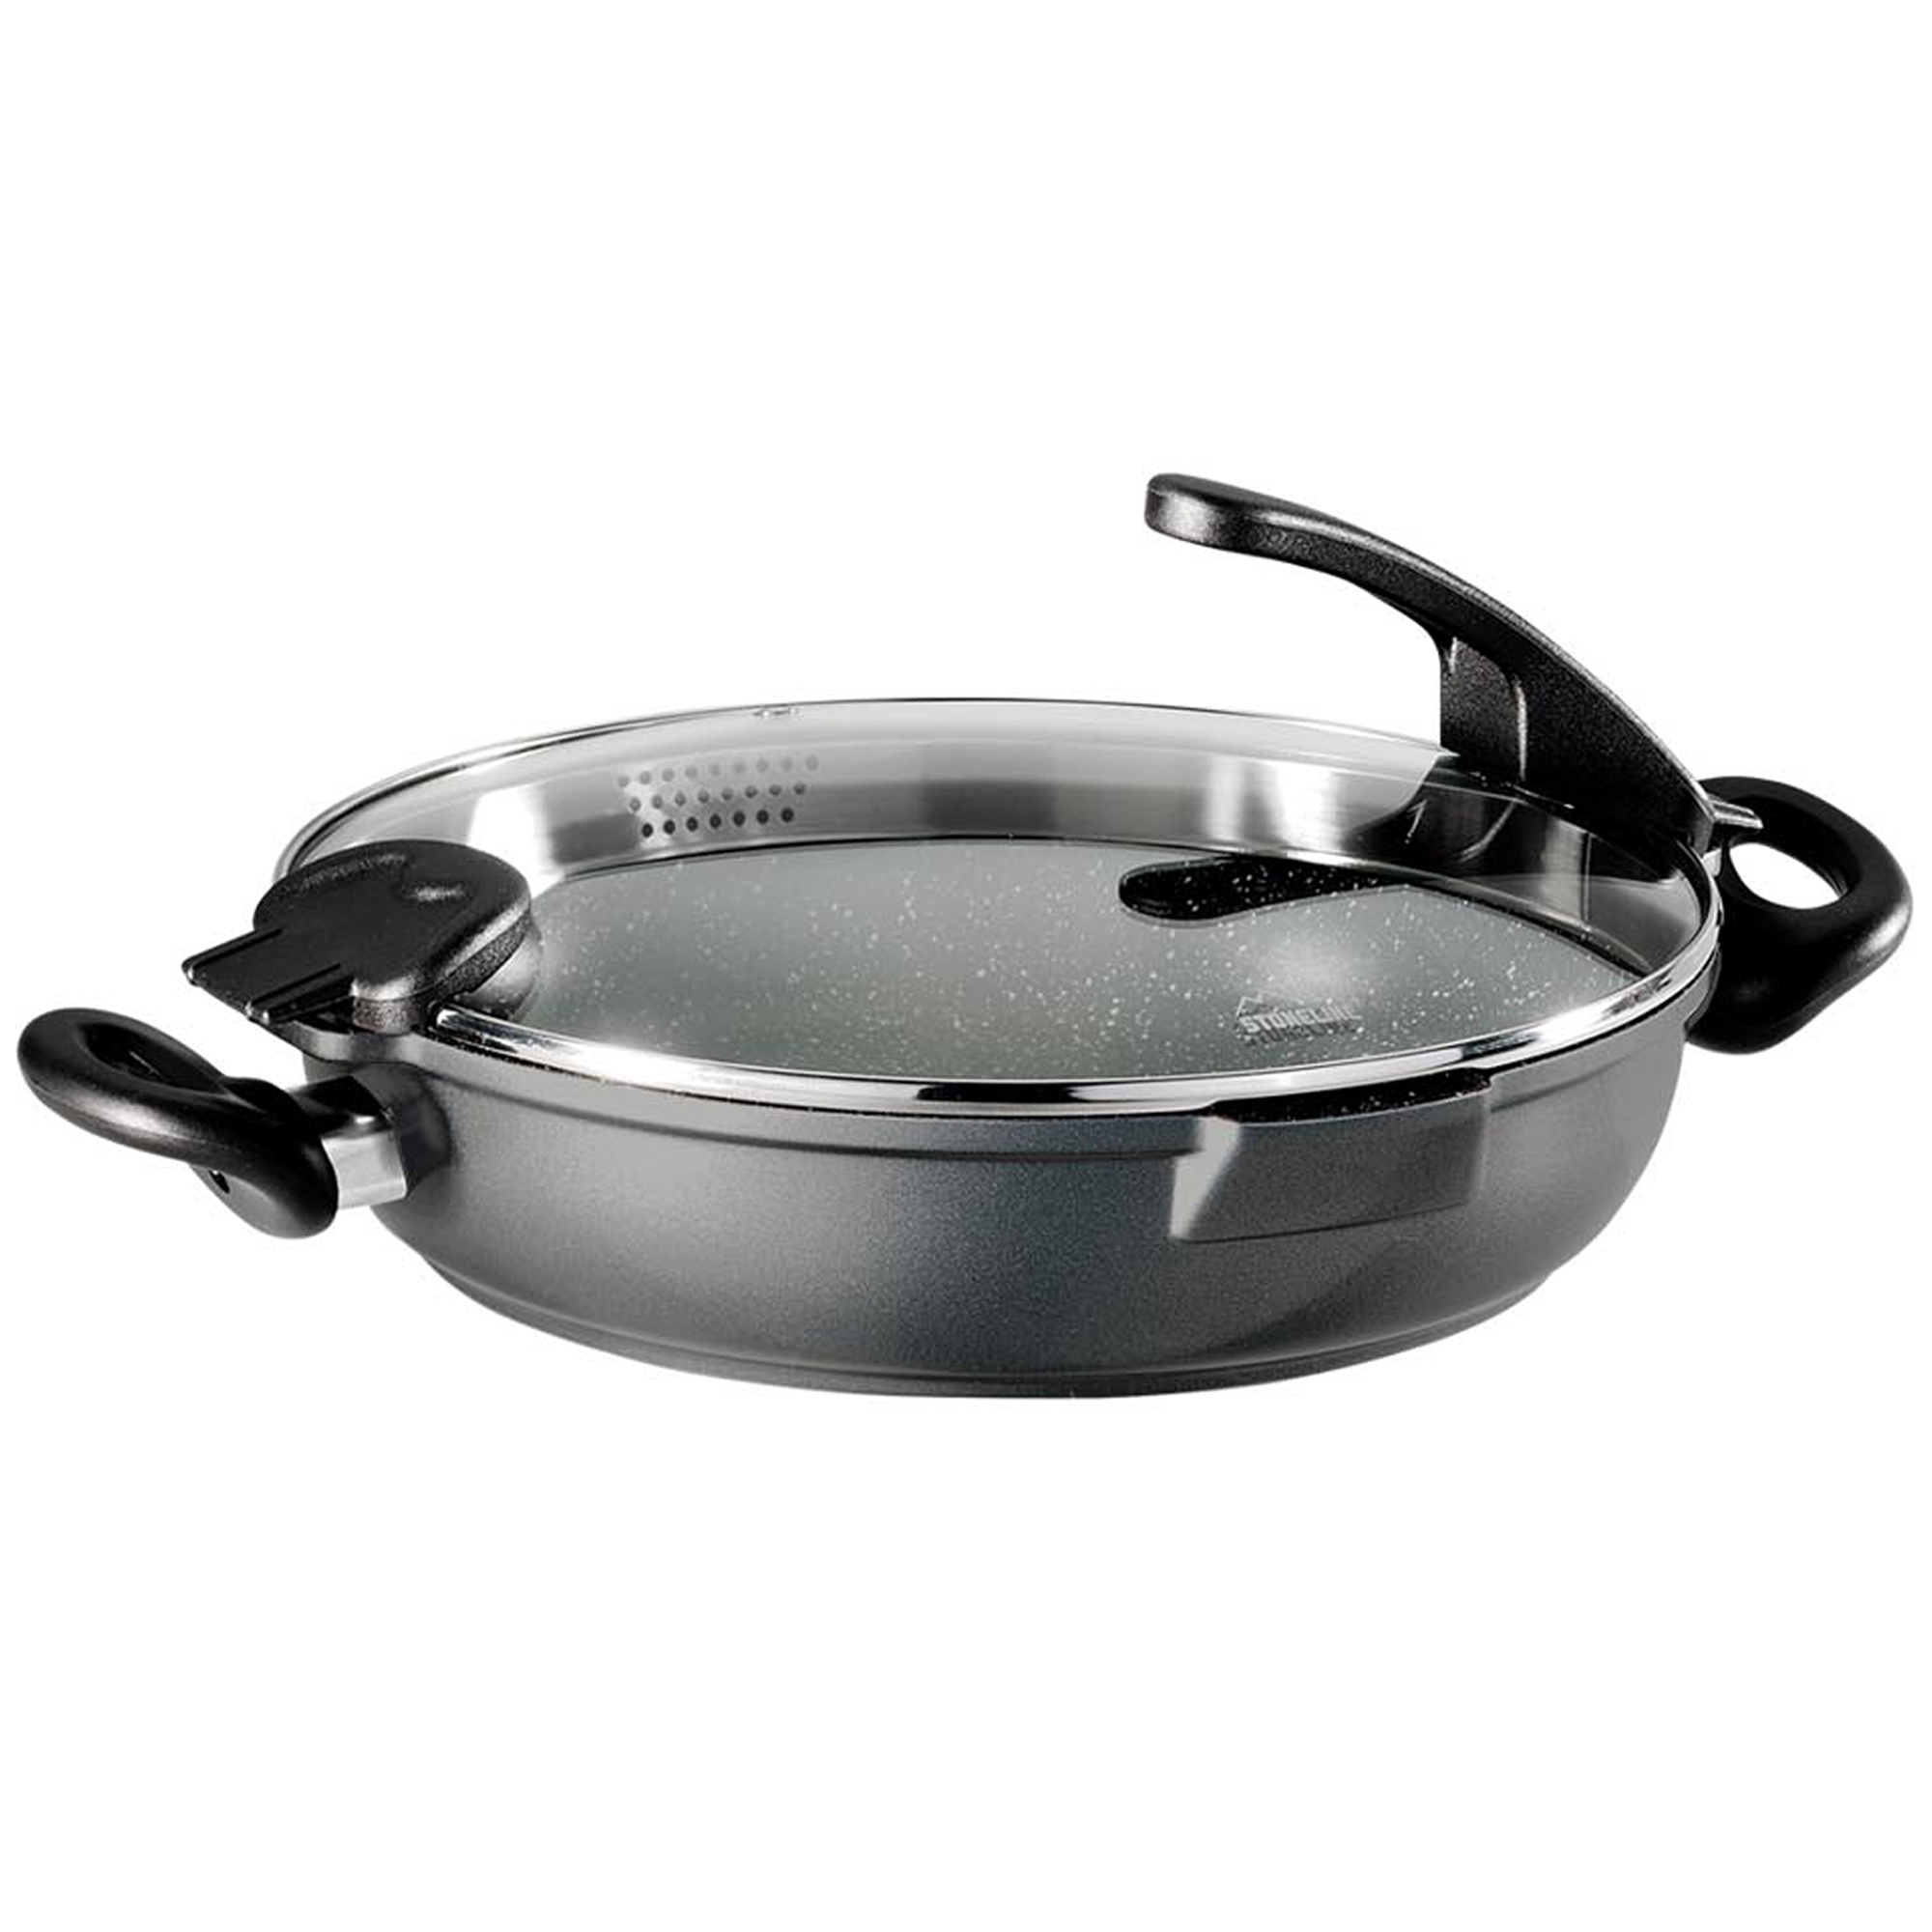 Stoneline 174 Future Serving Pan 32 Cm With Sieve Glass Lid